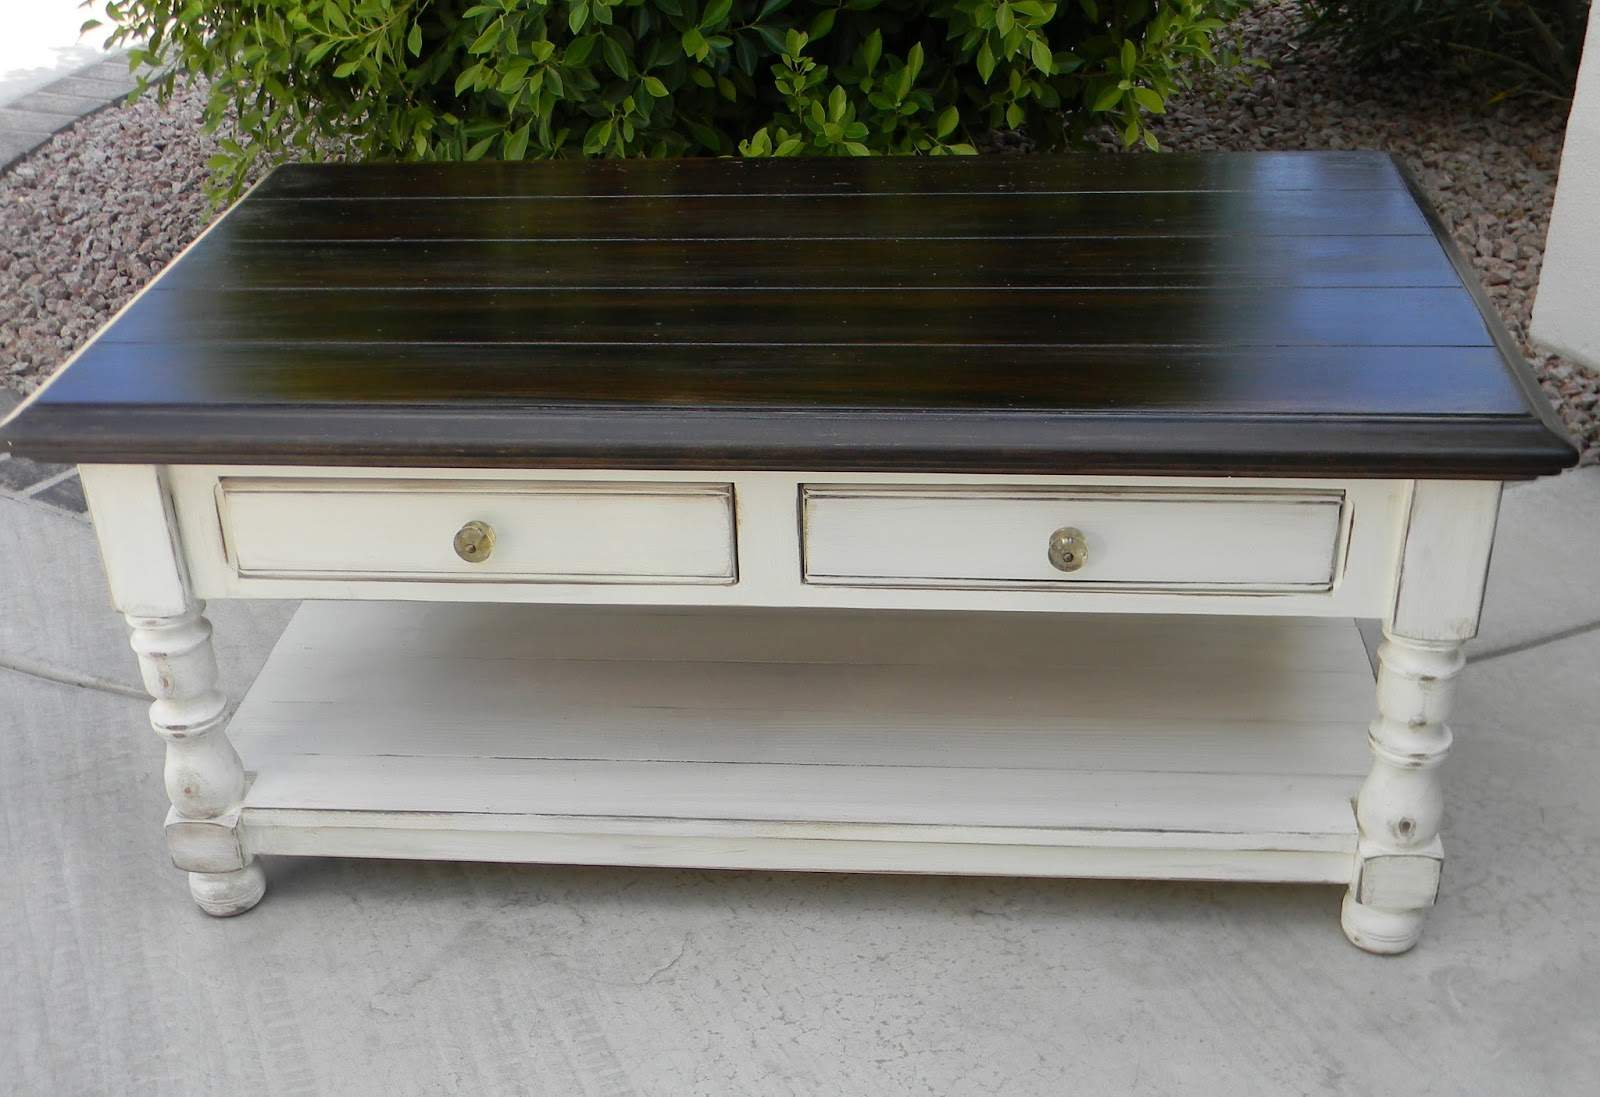 Little Bit Paint Refinished Coffee Table